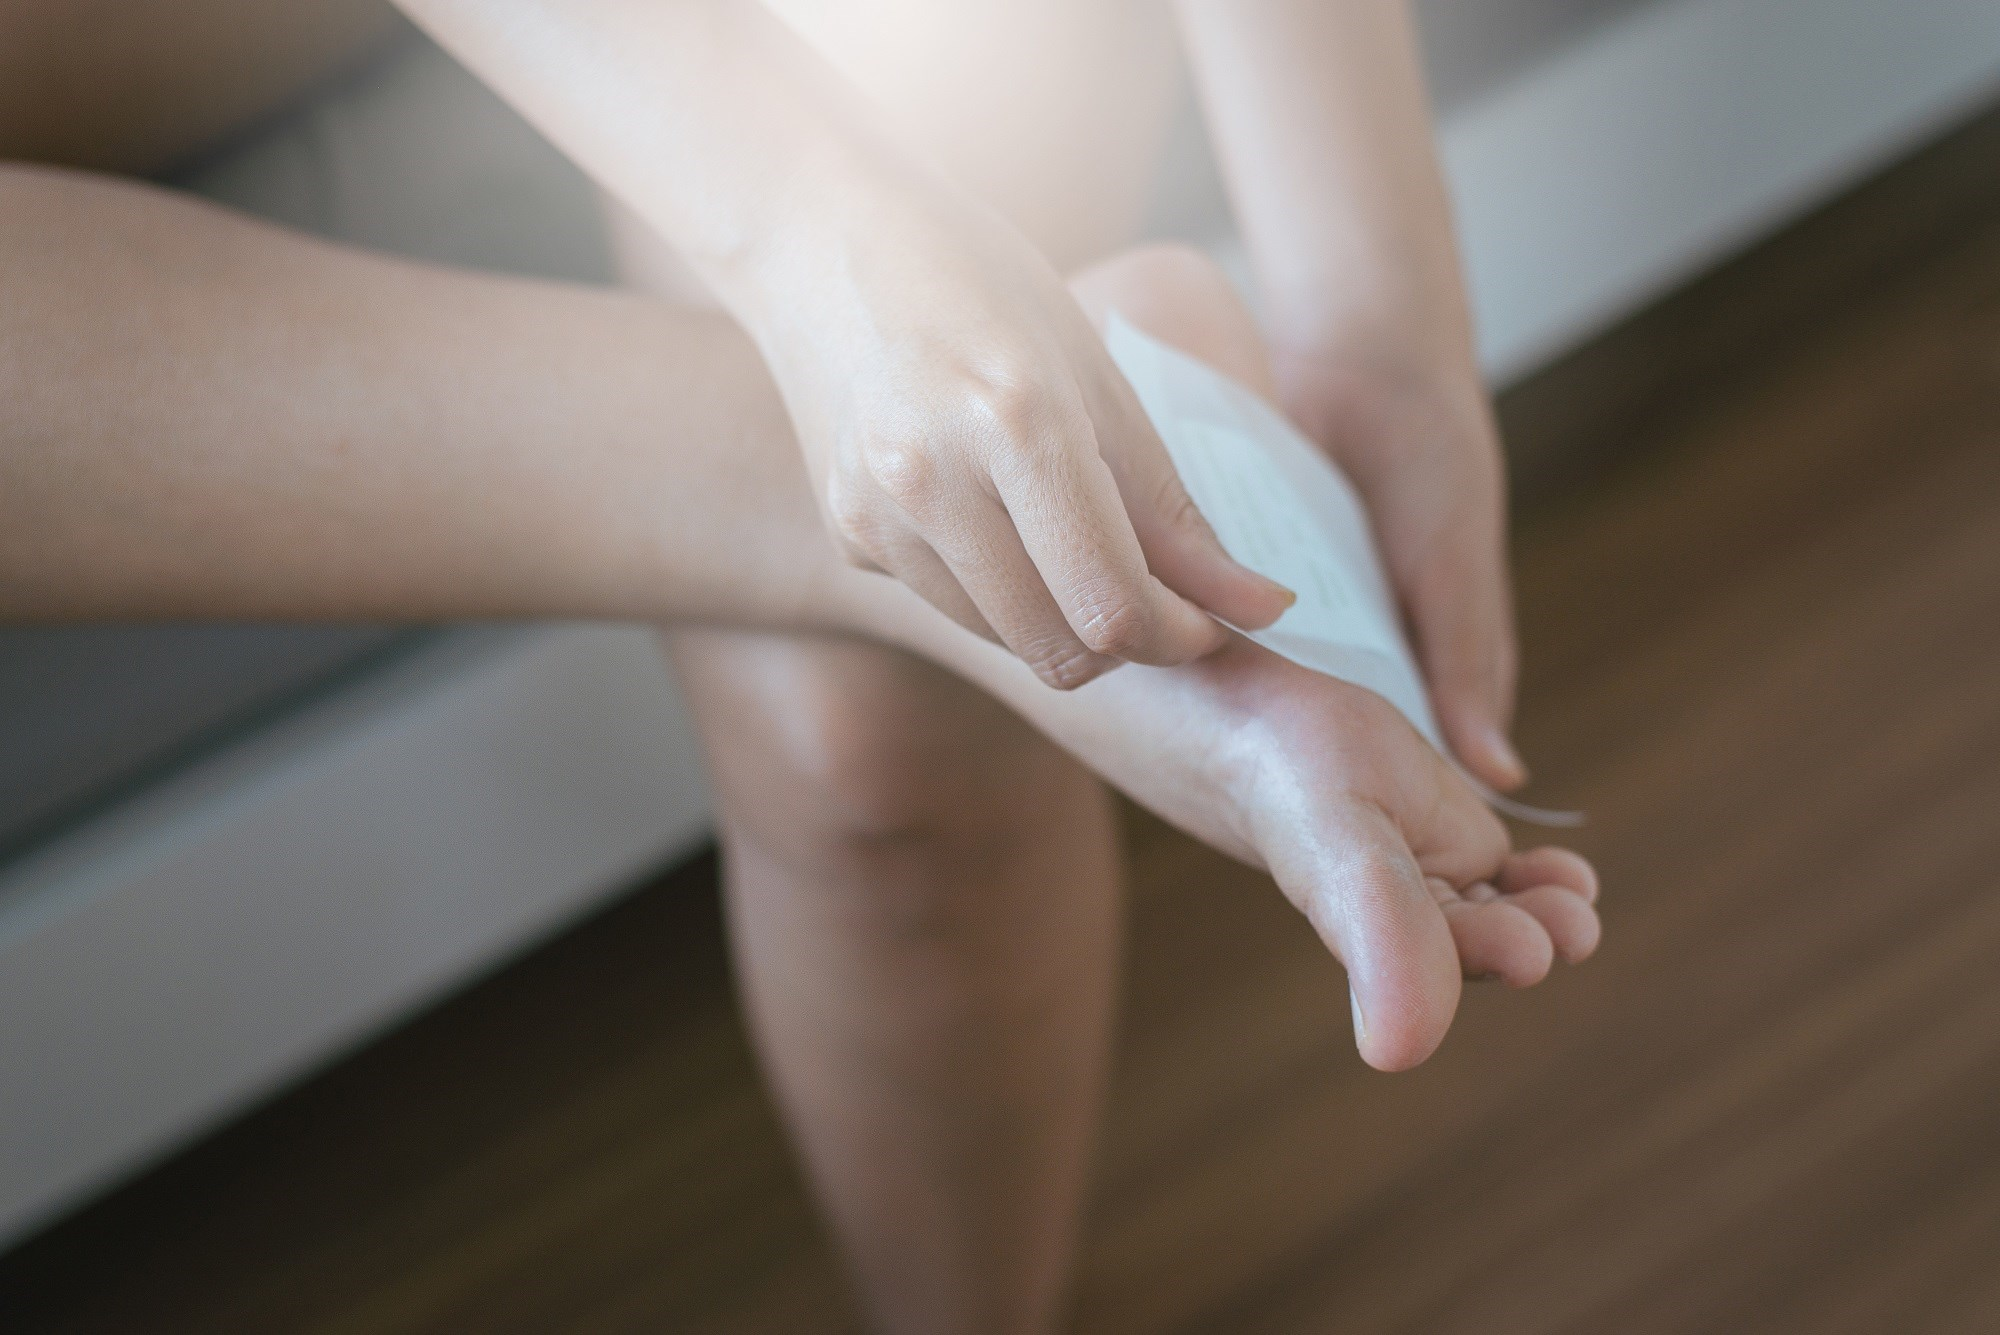 Study participants were given a capsaicin 8% patch to be applied to the upper and lower extremities for the treatment of postherpetic neuralgia, postoperative cicatrized pain, or other localized perip